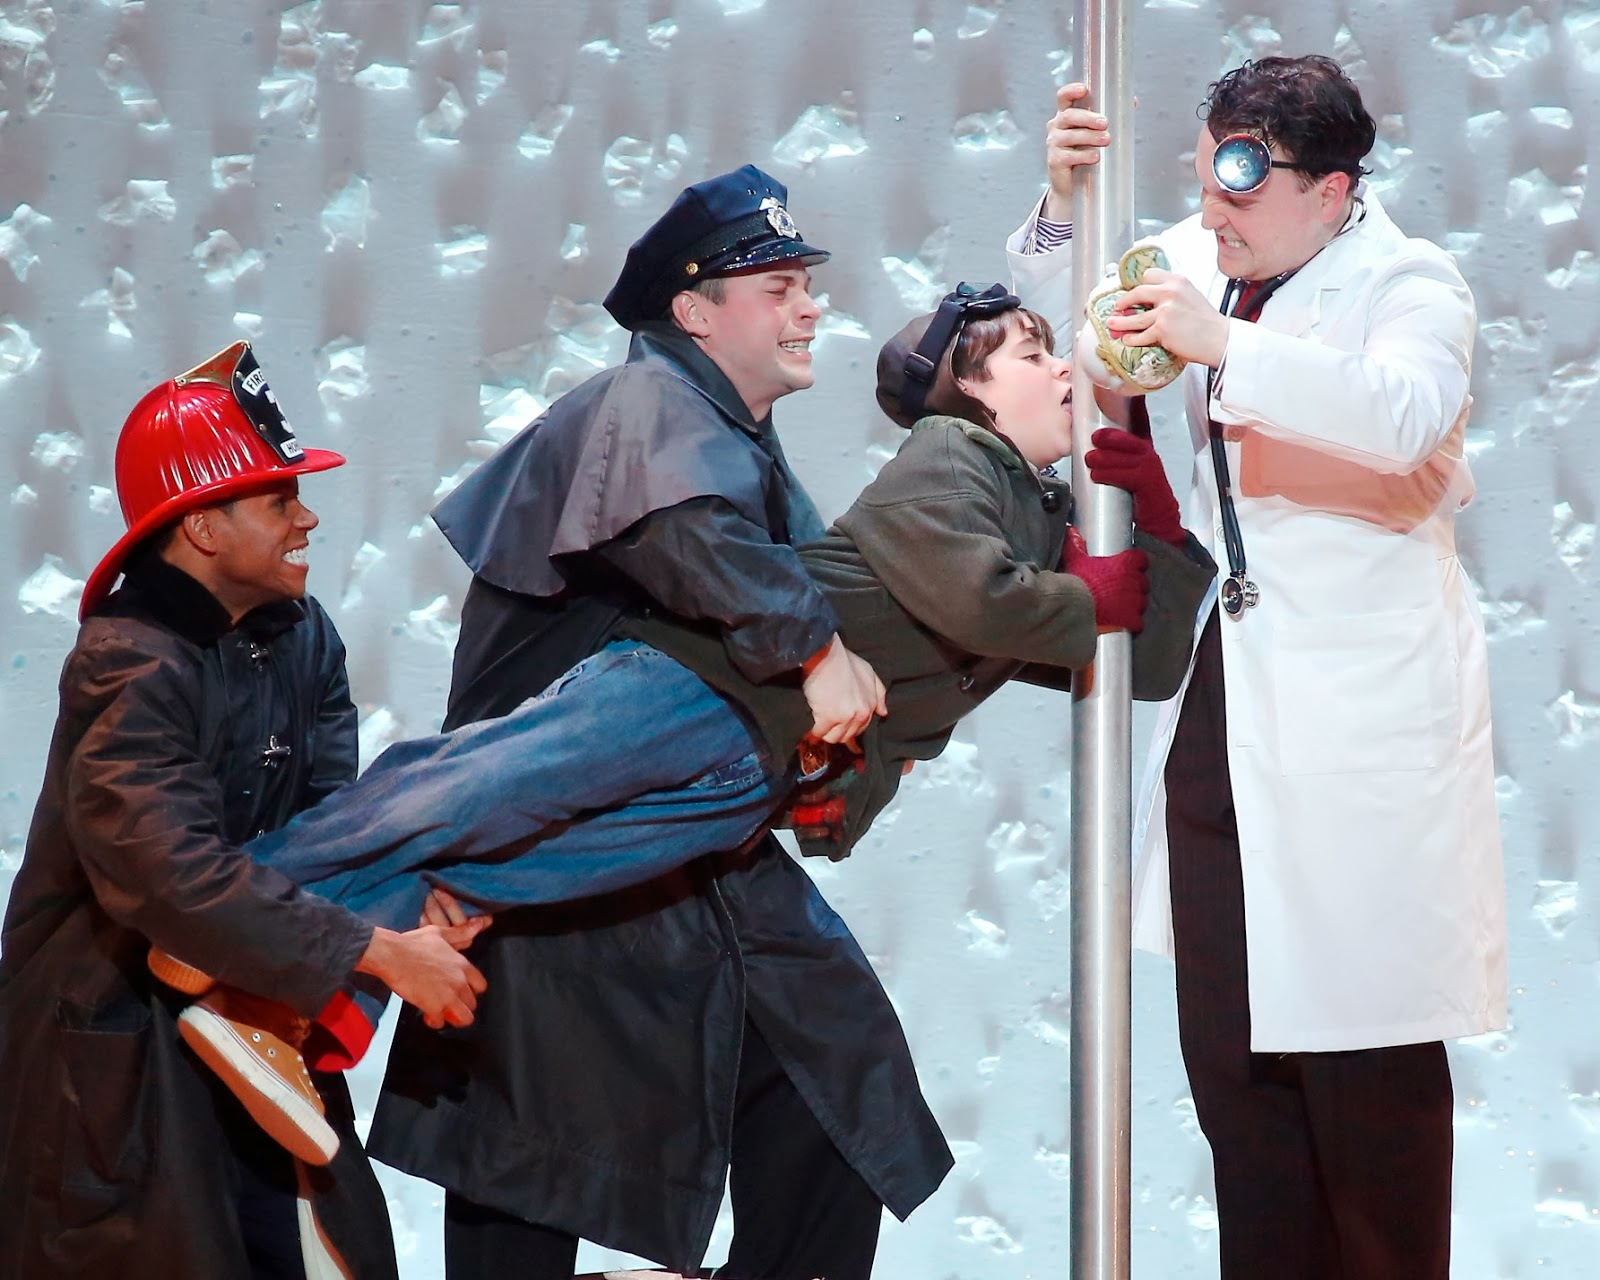 Evan and Lauren's Cool Blog: 11/21/13: A Christmas Story, The Musical at Boston's Citi Wang Theatre